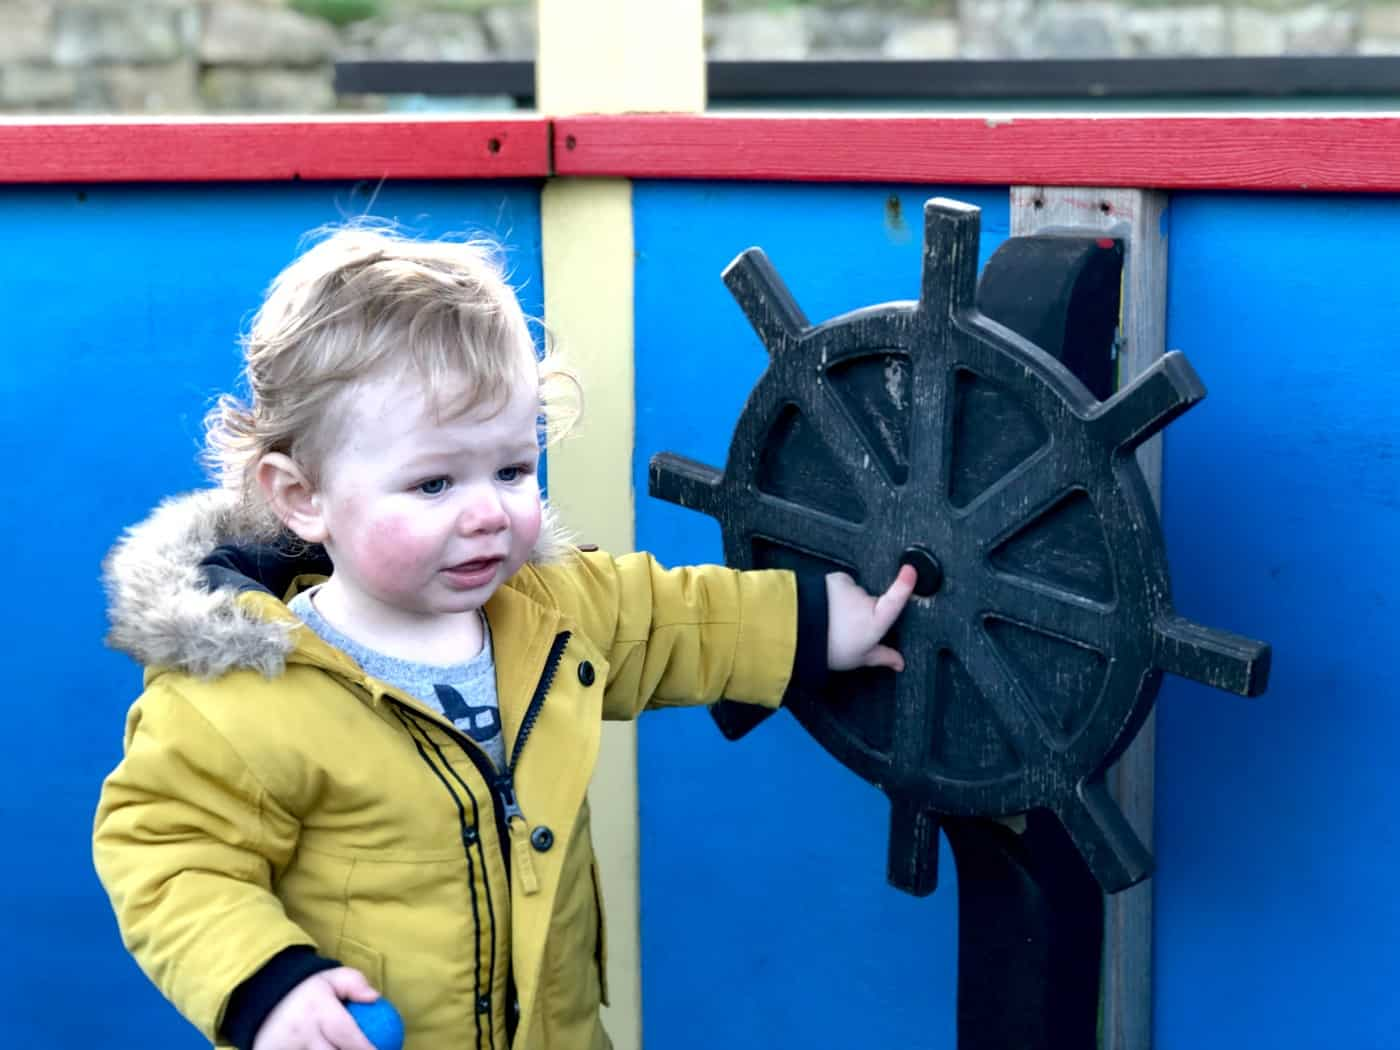 Boy on wooden pirate ship